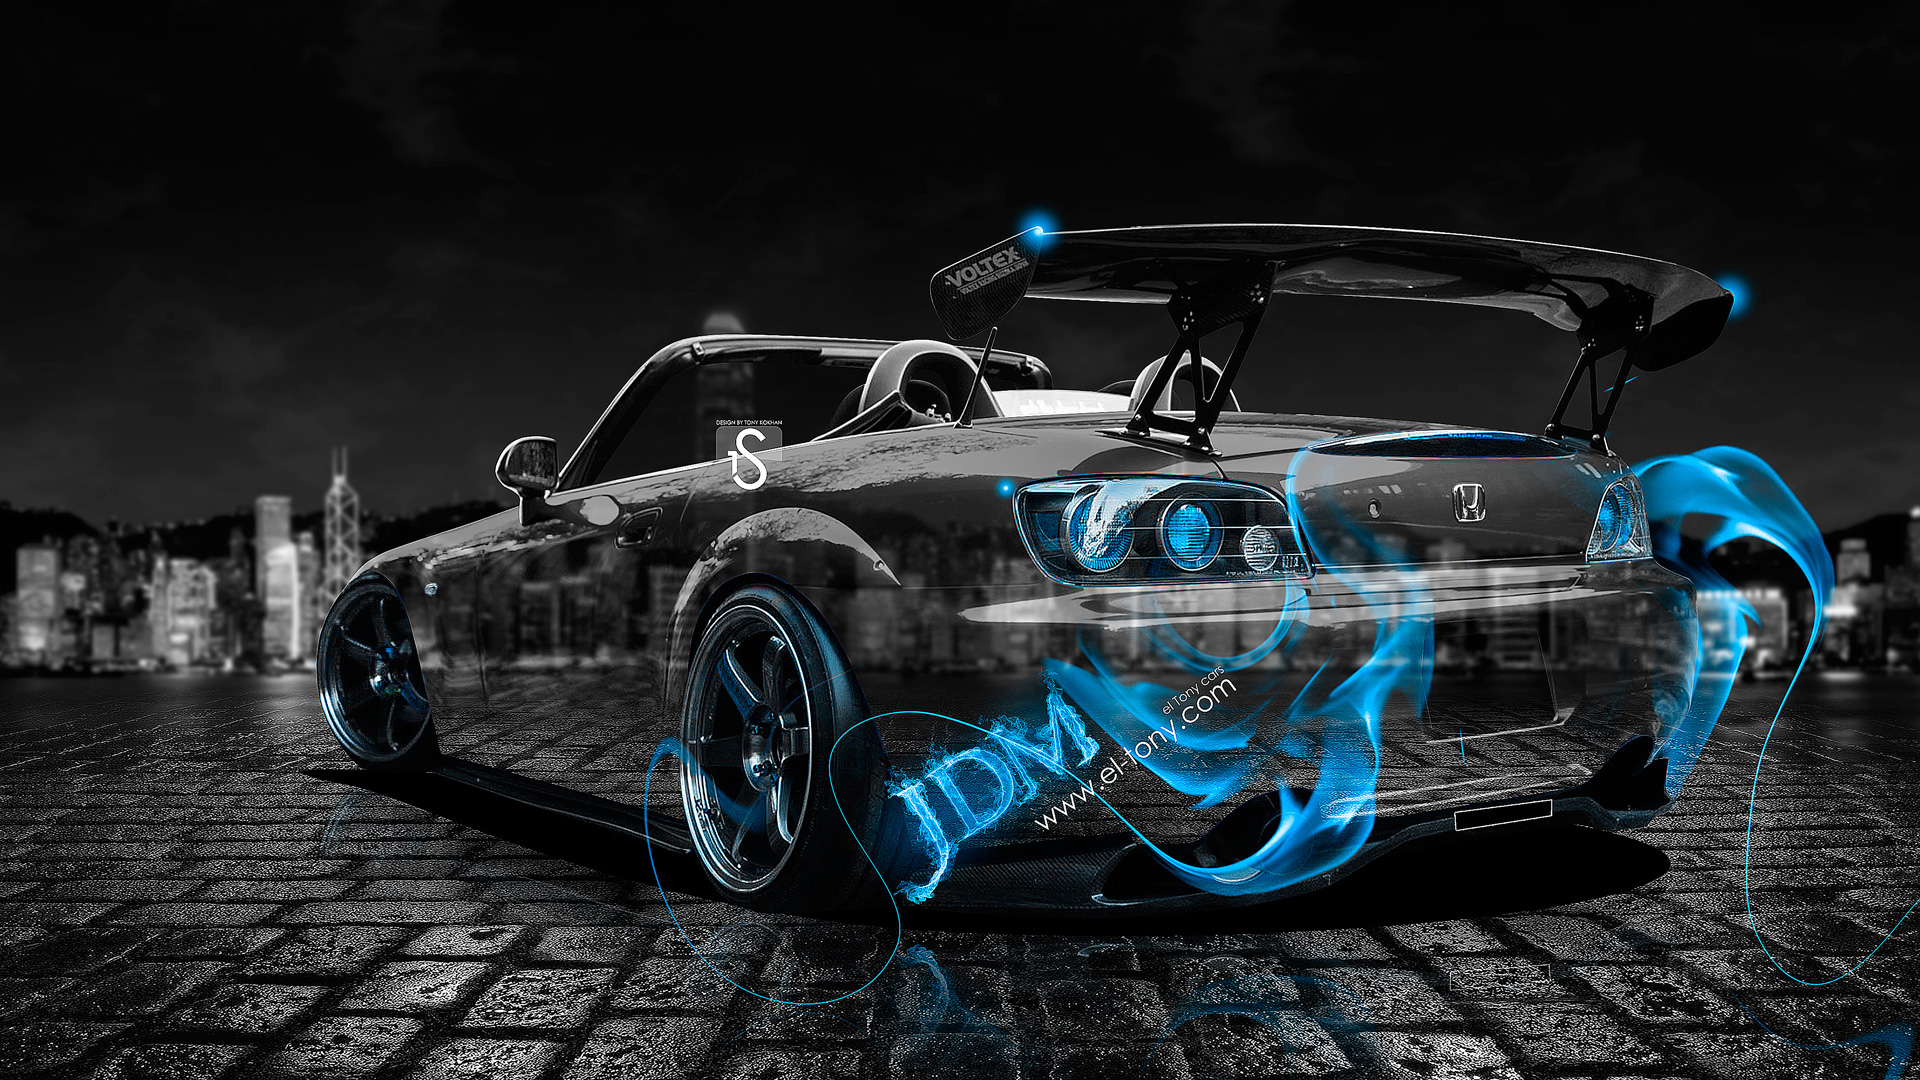 Incroyable Honda S2000 JDM Blue Fire Crystal Car 2013